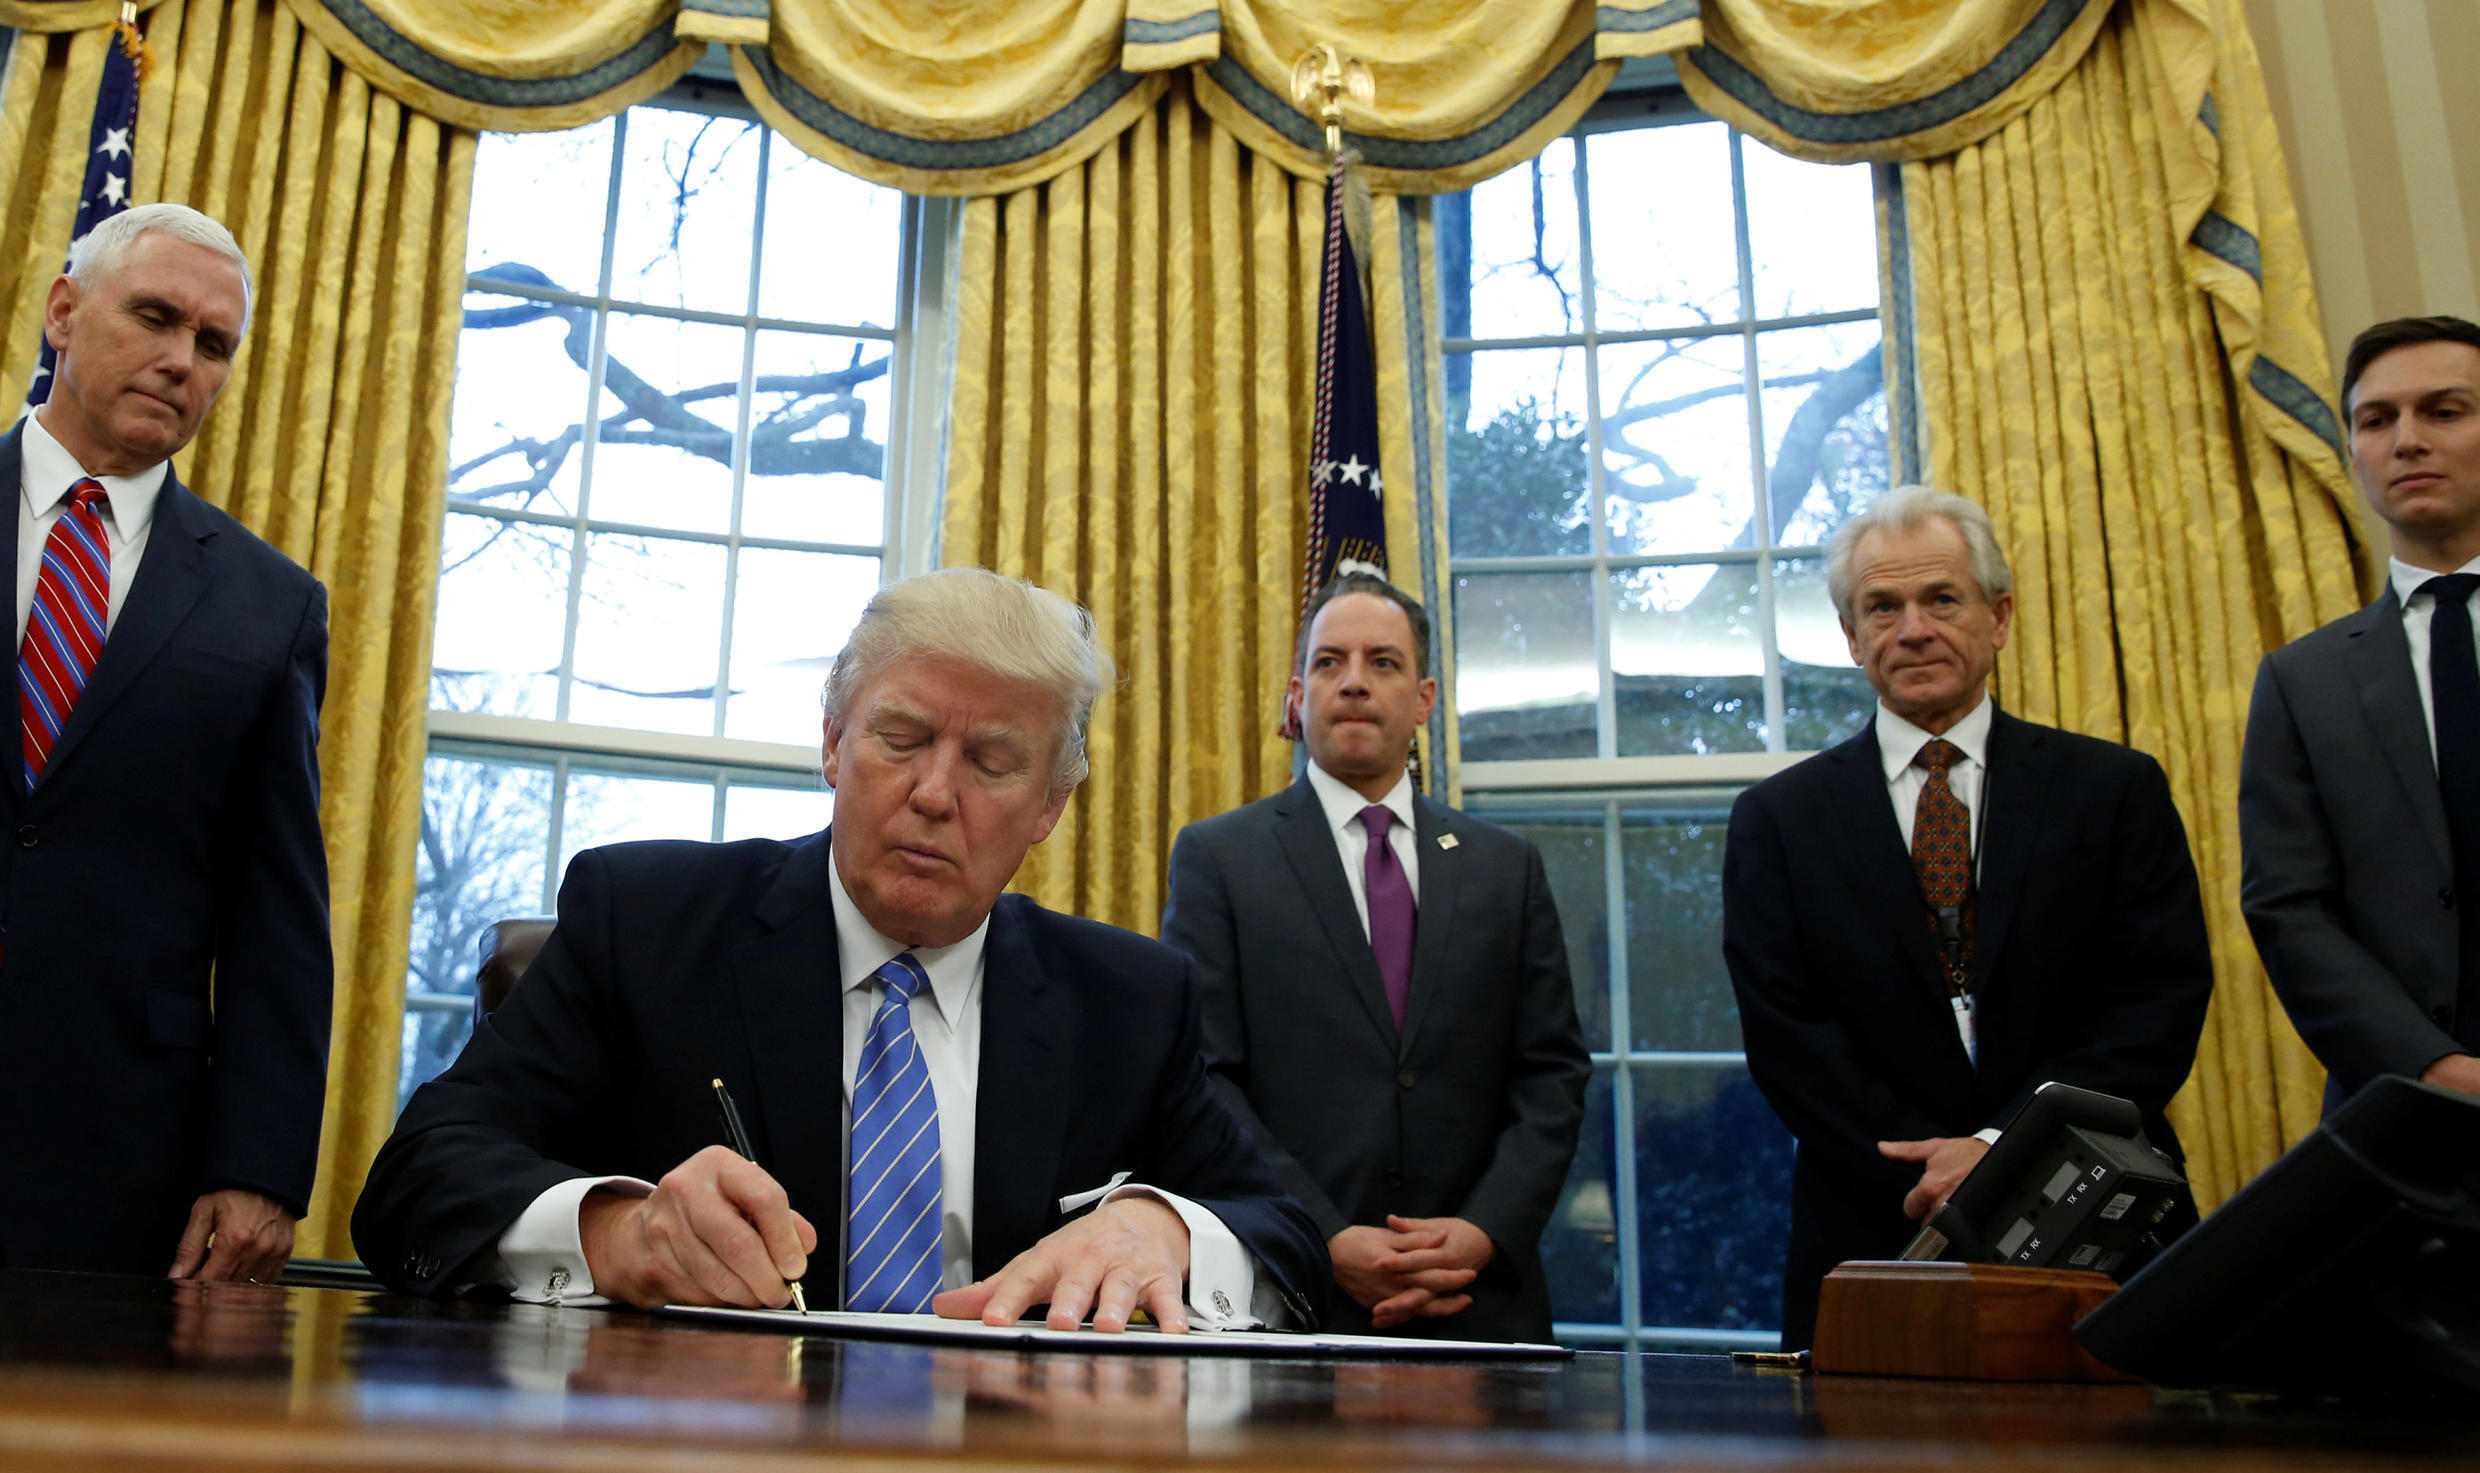 U.S. President Donald Trump with (L-R) Vice President Mike Pence, White House Chief of Staff Reince Priebus, head of the White House Trade Council Peter Navarro and senior advisor Jared Kushner.